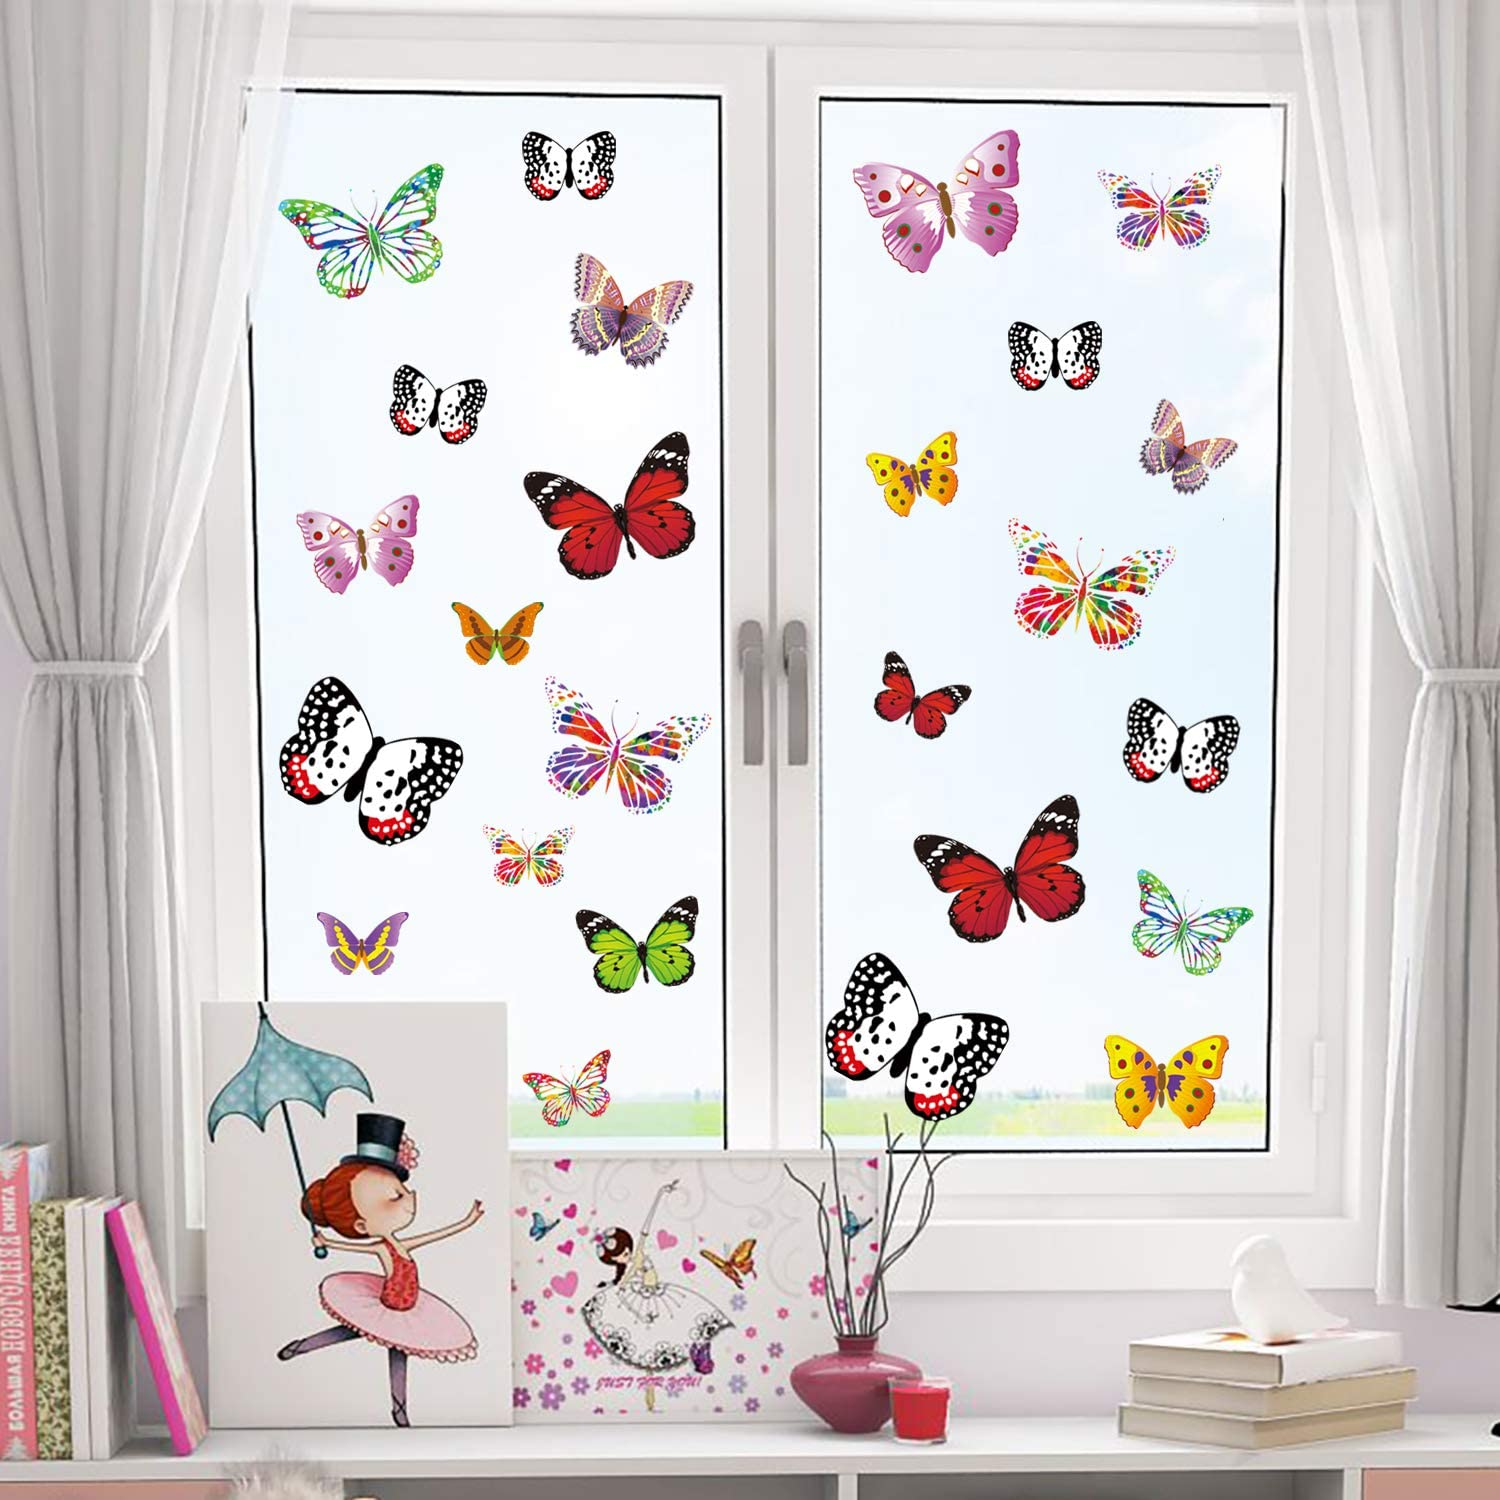 PARLAIM 28 PCS Colorful Butterfly Window Clings Anti-Collision Window Decals to Prevent Bird Strikes on Window Glass Non Adhesive Anti-Collision Window Stickers